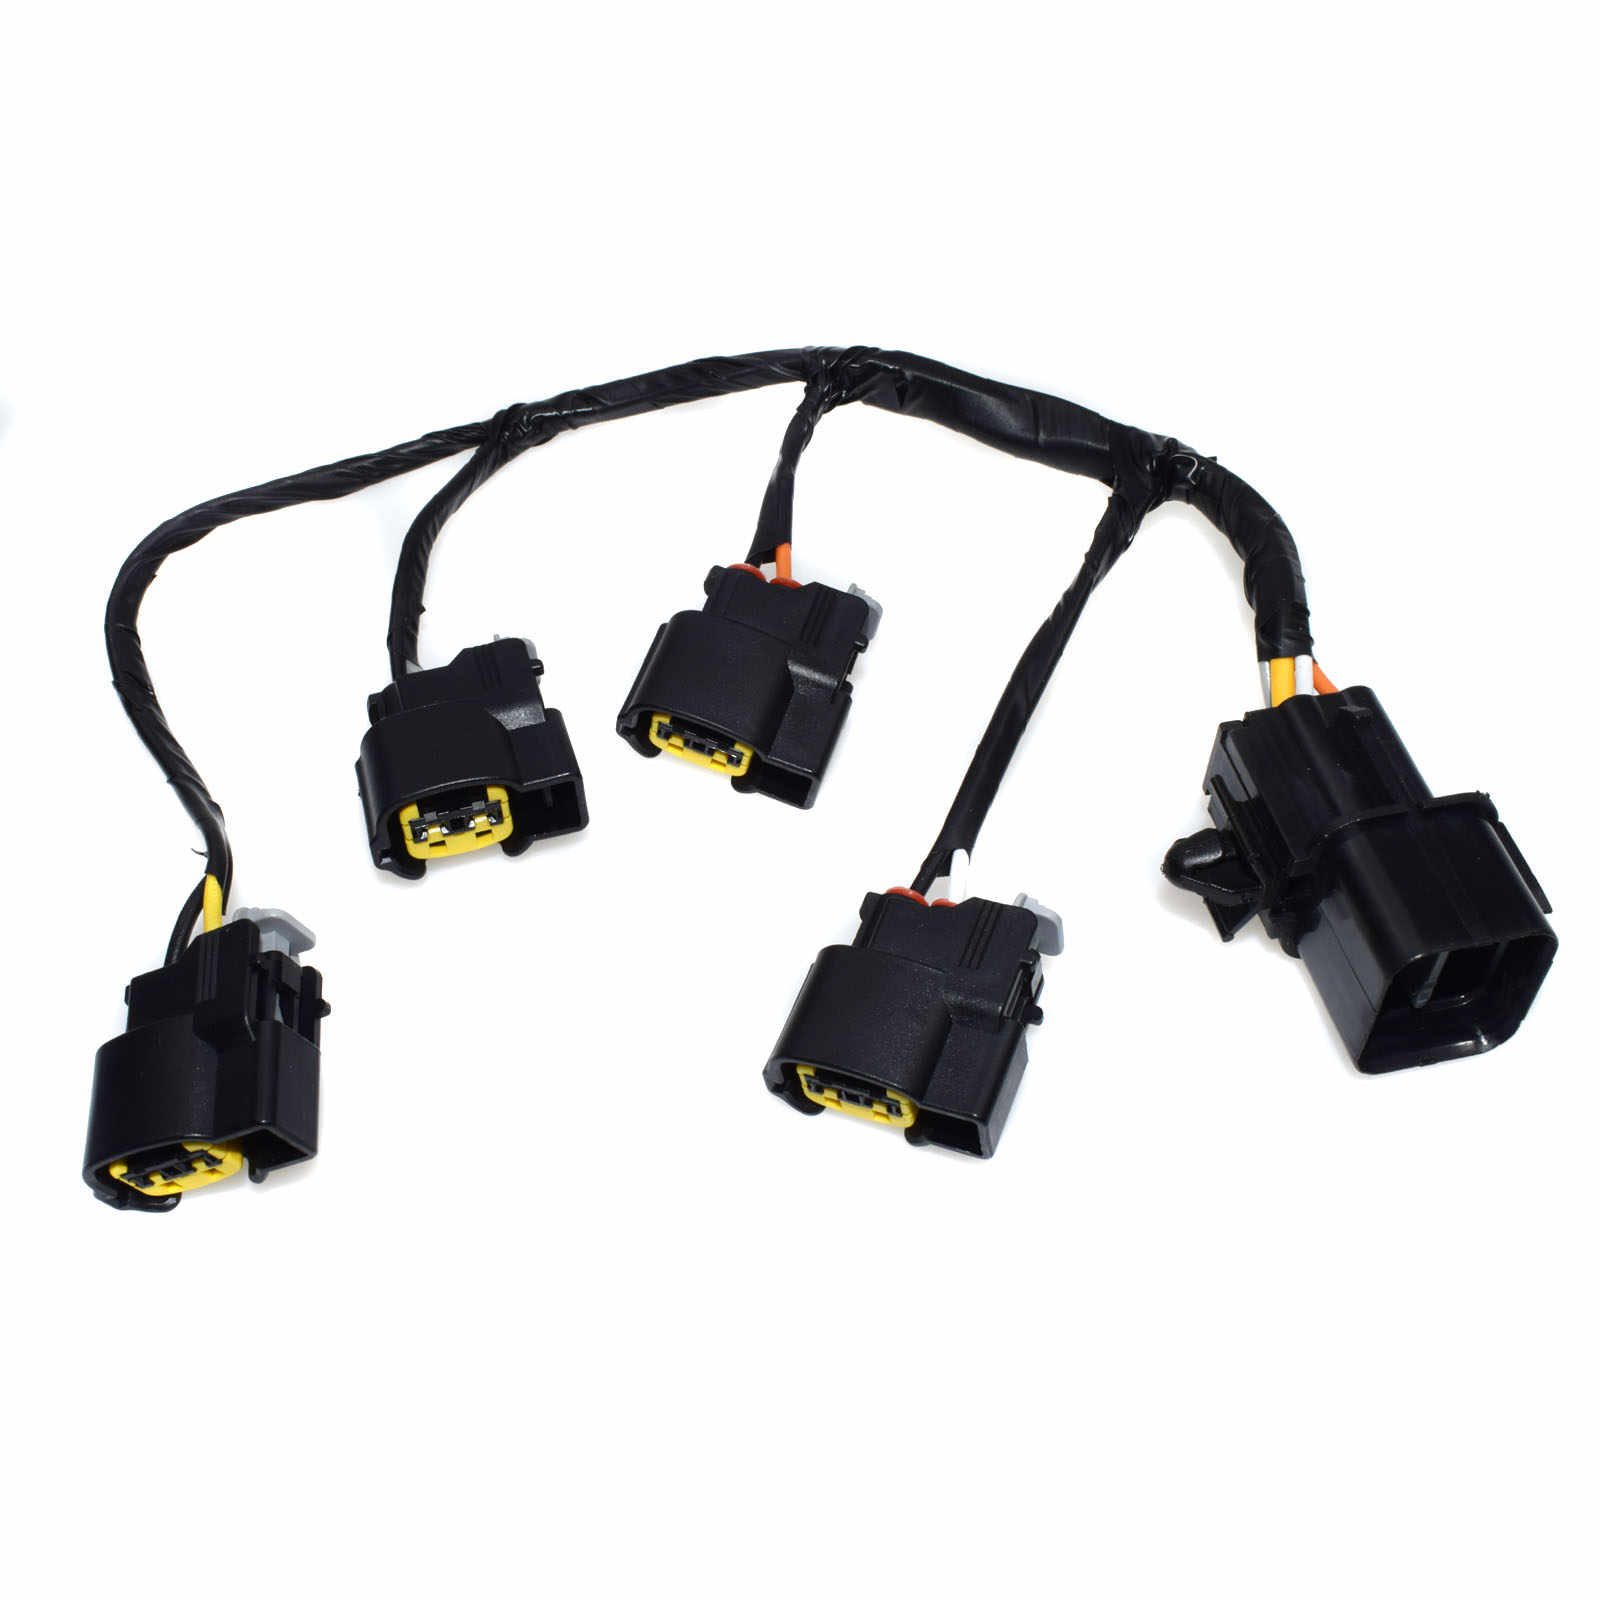 medium resolution of  wolfigo new ignition coil wire harness for hyundai veloster kia rio soul 273502b000 27350 2b000 27301